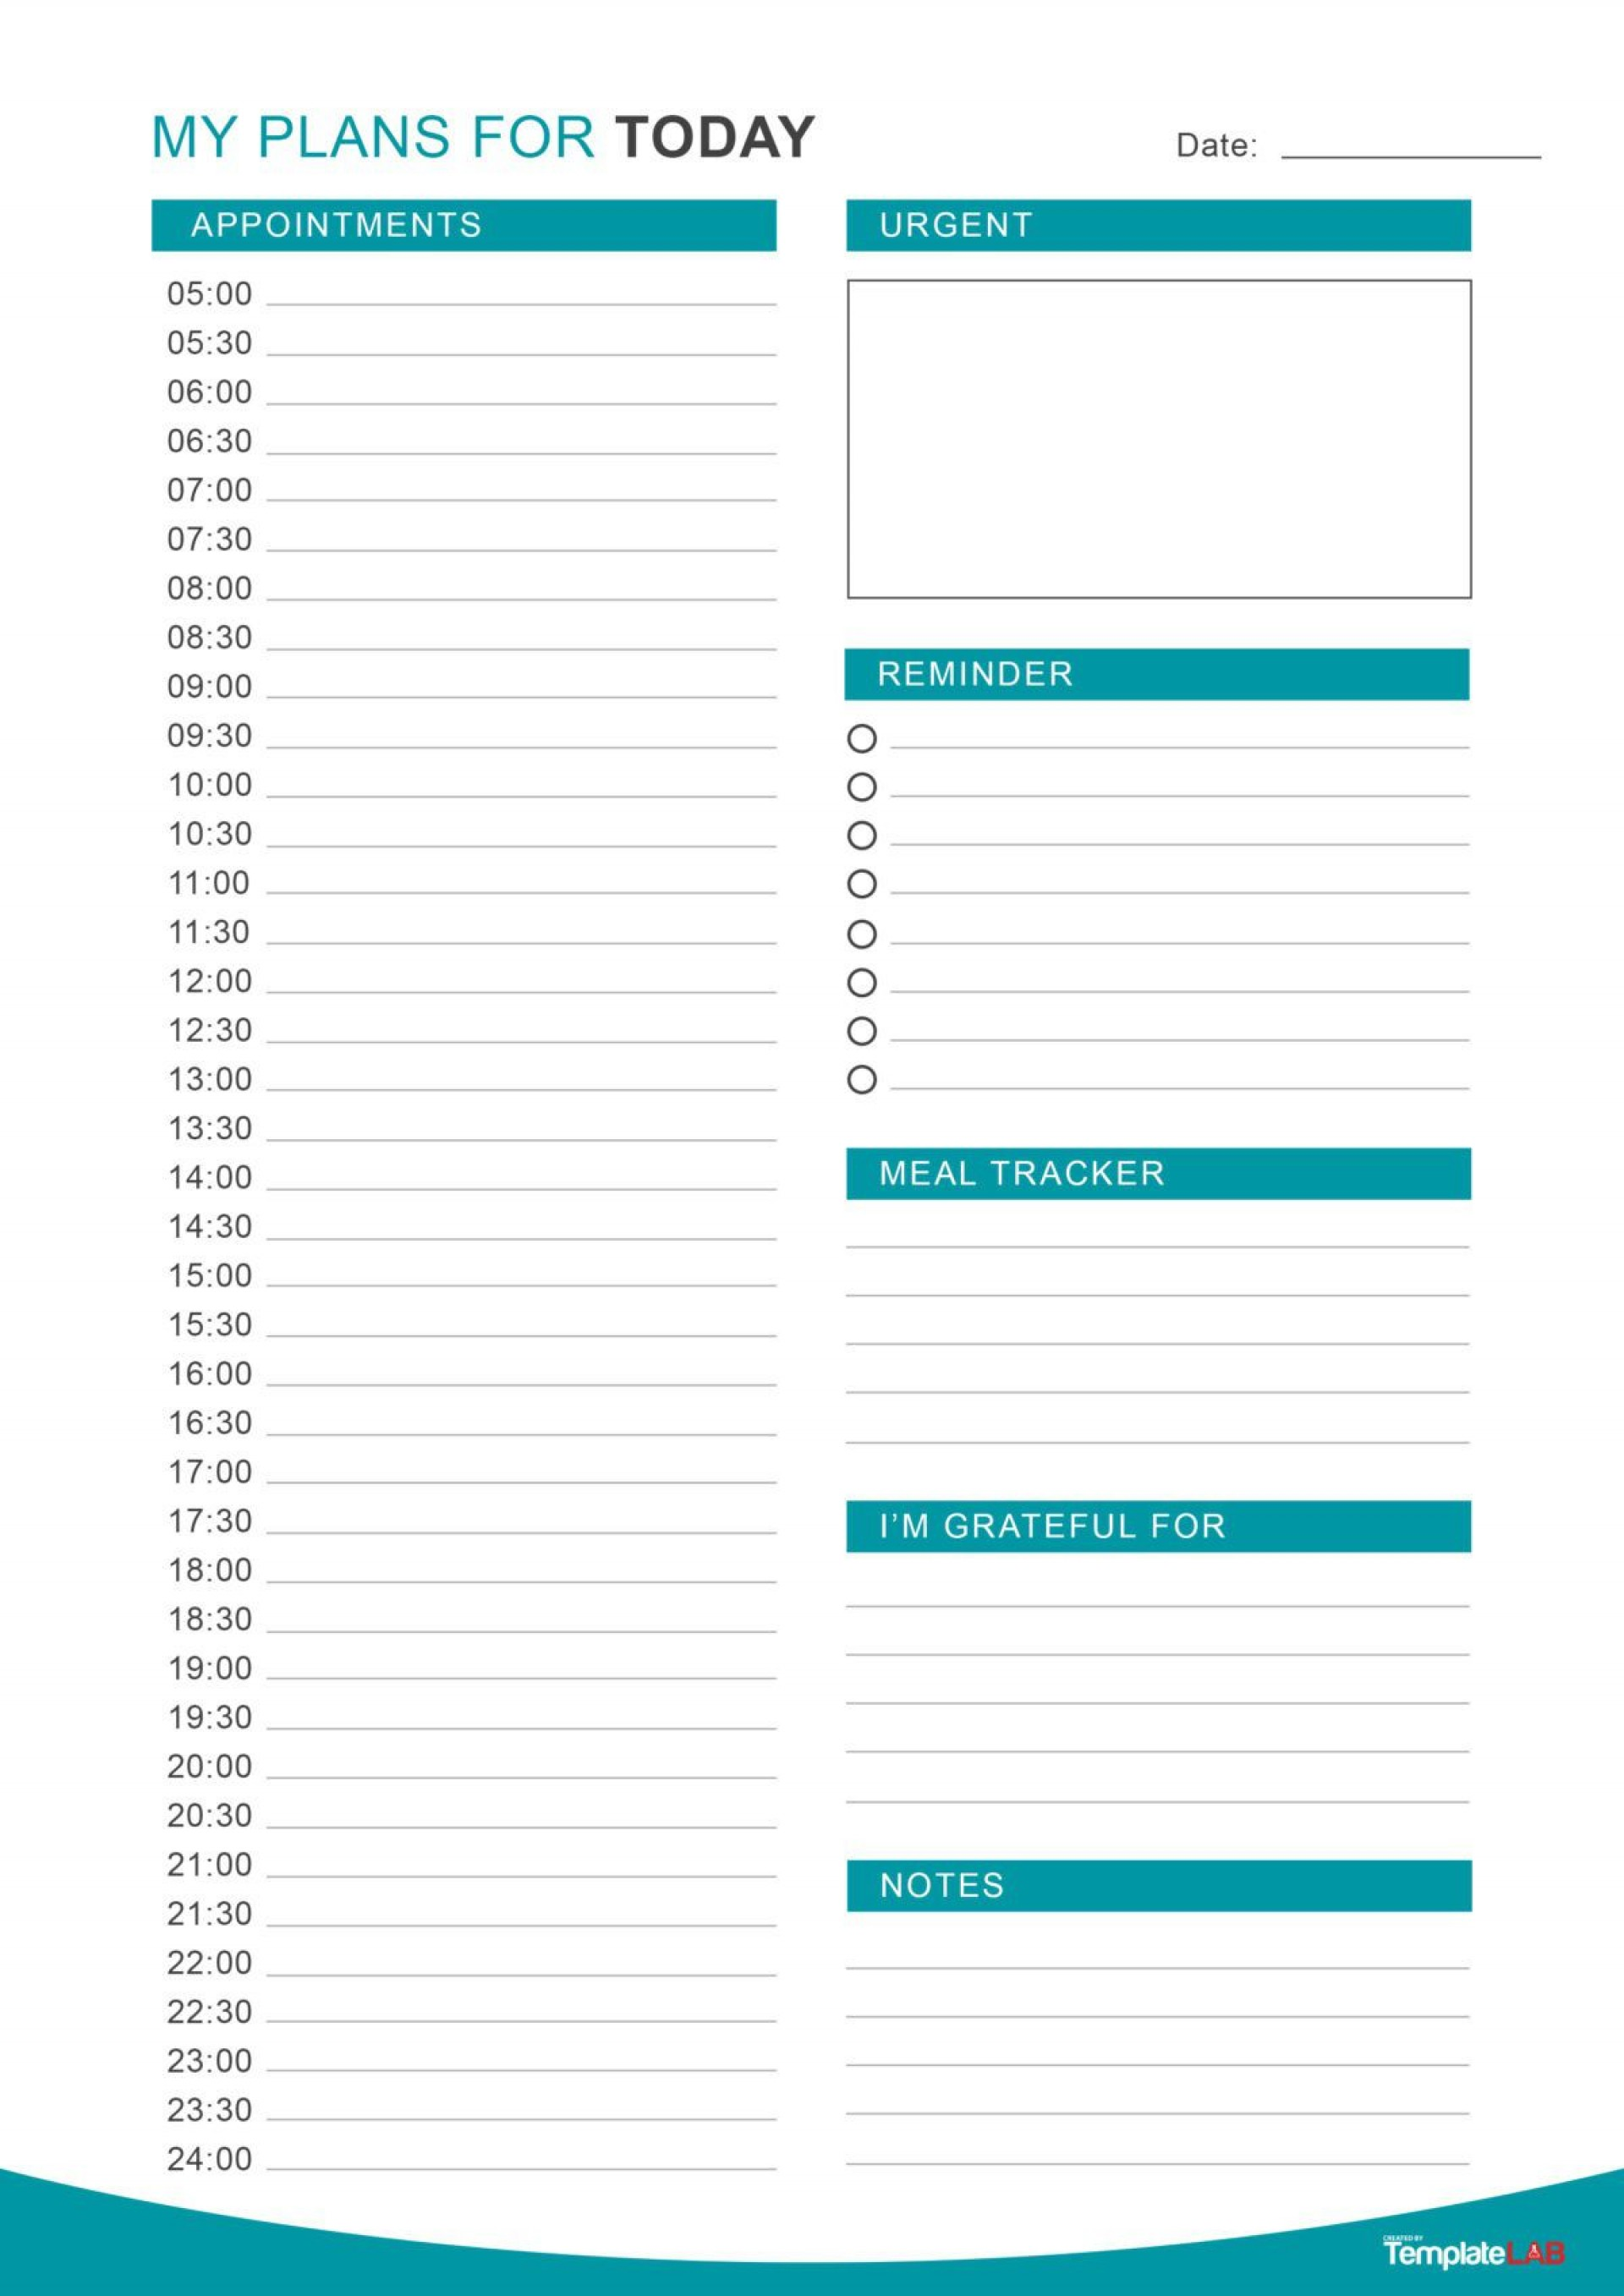 003 Exceptional Daily Hourly Schedule Template Word Idea 1920